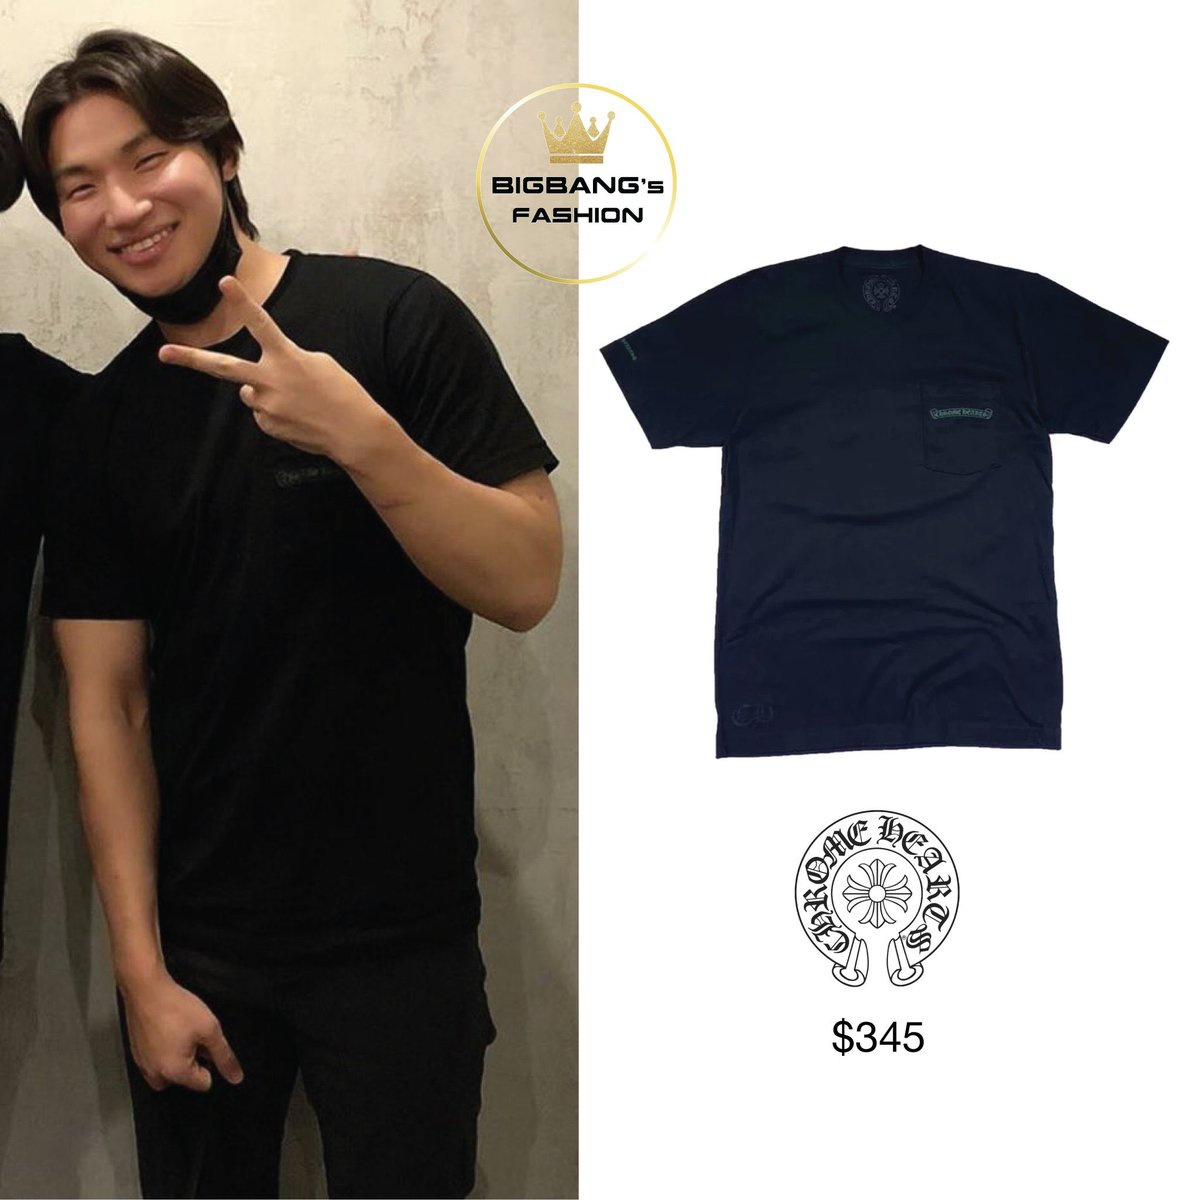 200916 eskimo7474 IG update with Daesung ✨ Cemetery Cross Print Black T-Shirt ($345)